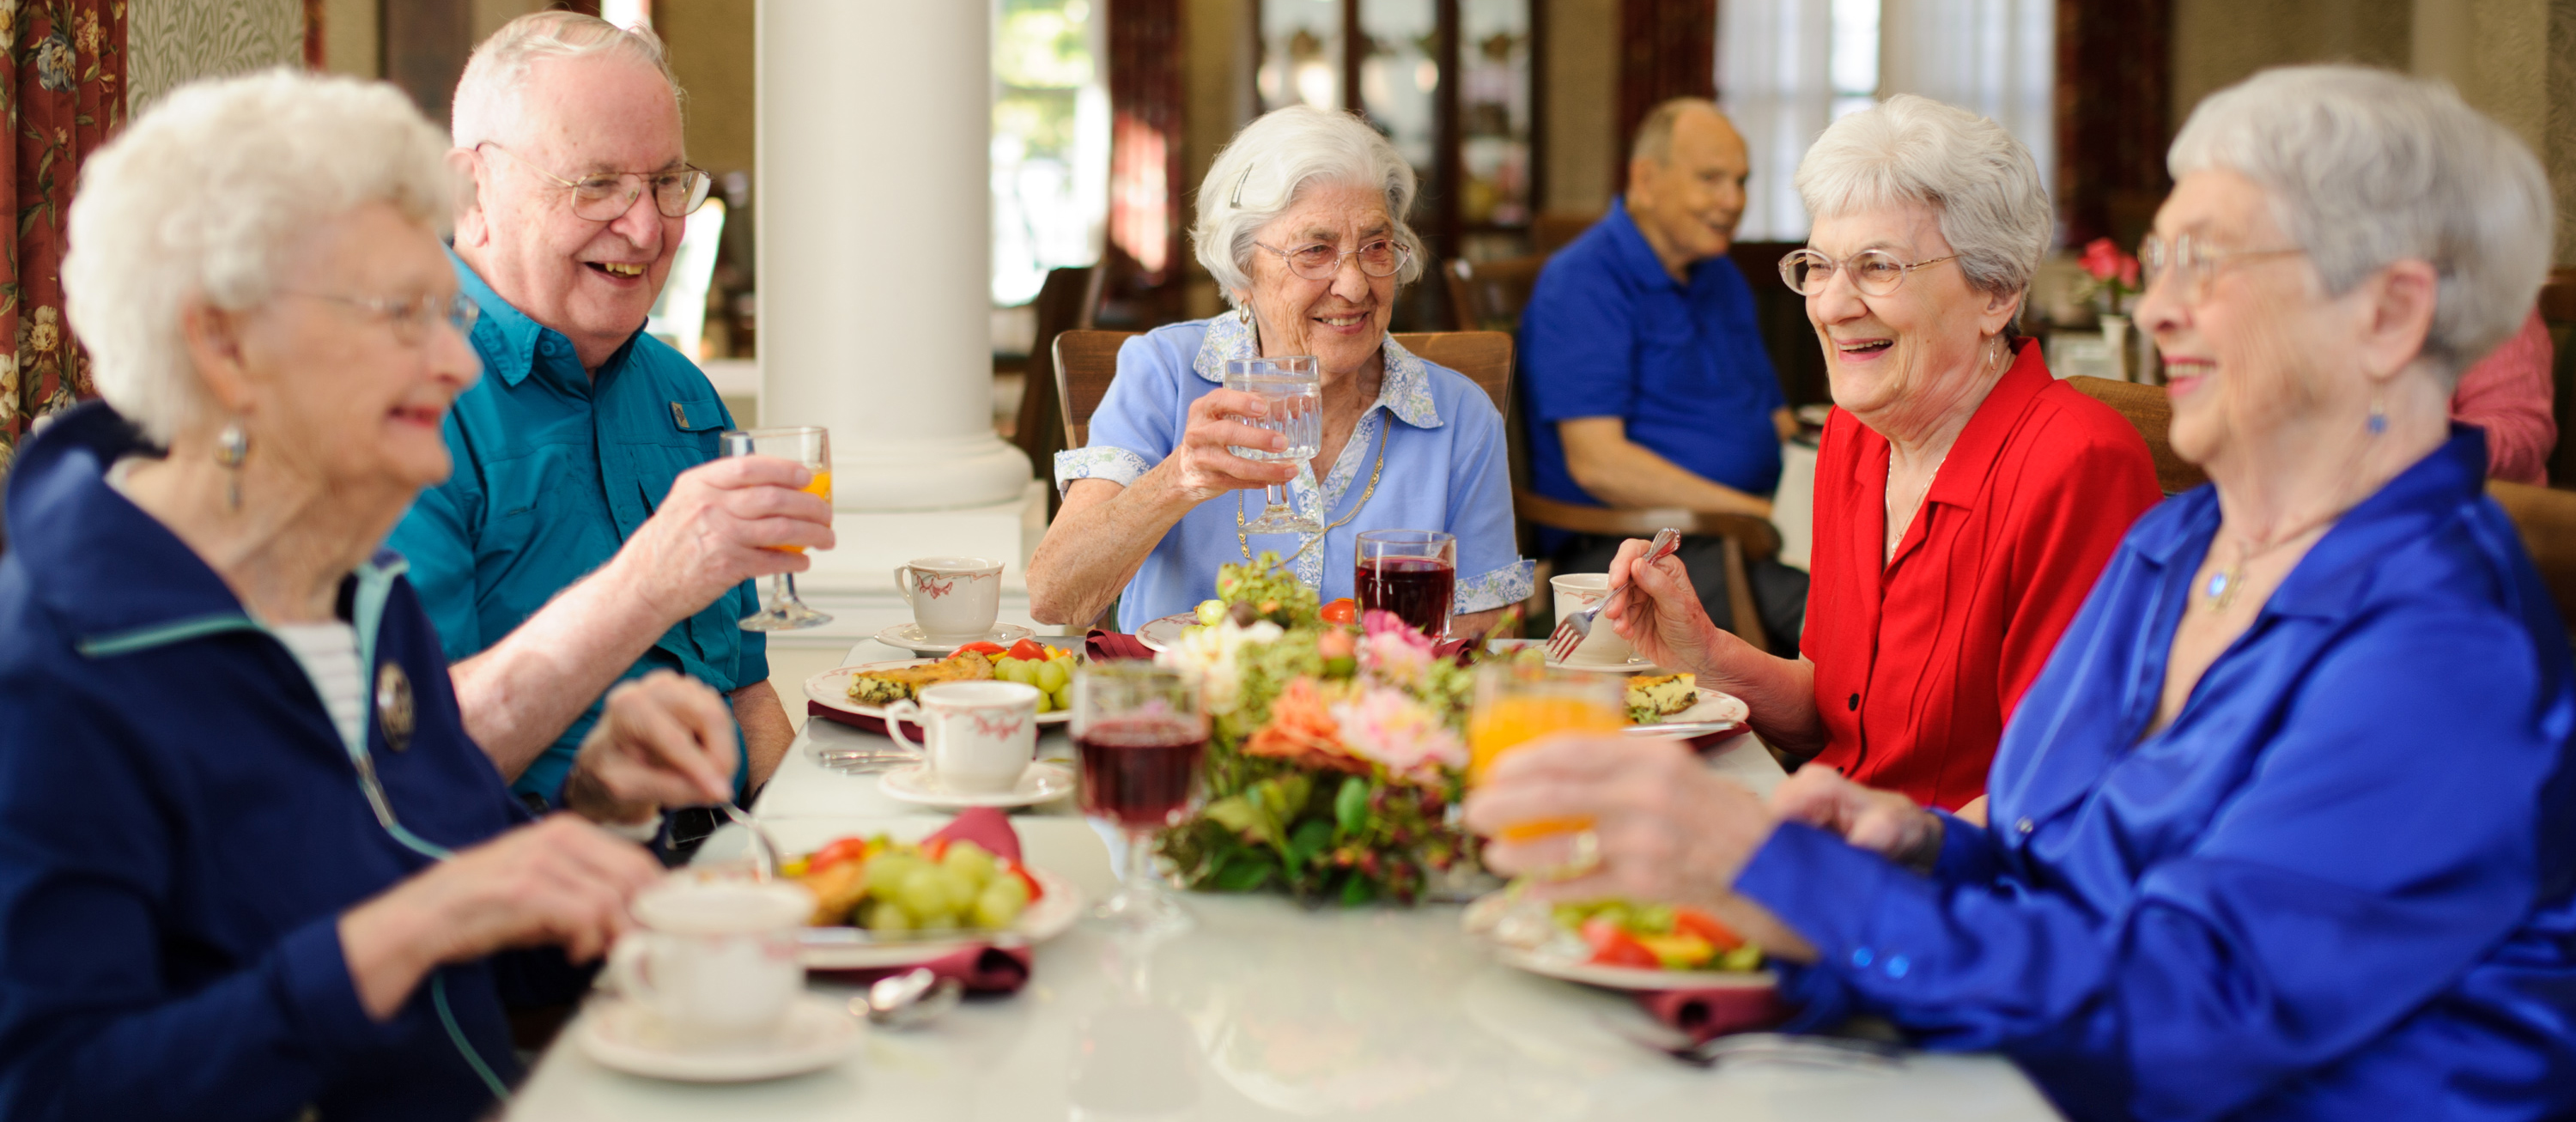 A Culinary Experience: Senior Living Chefs Share Perspectives on Mealtime